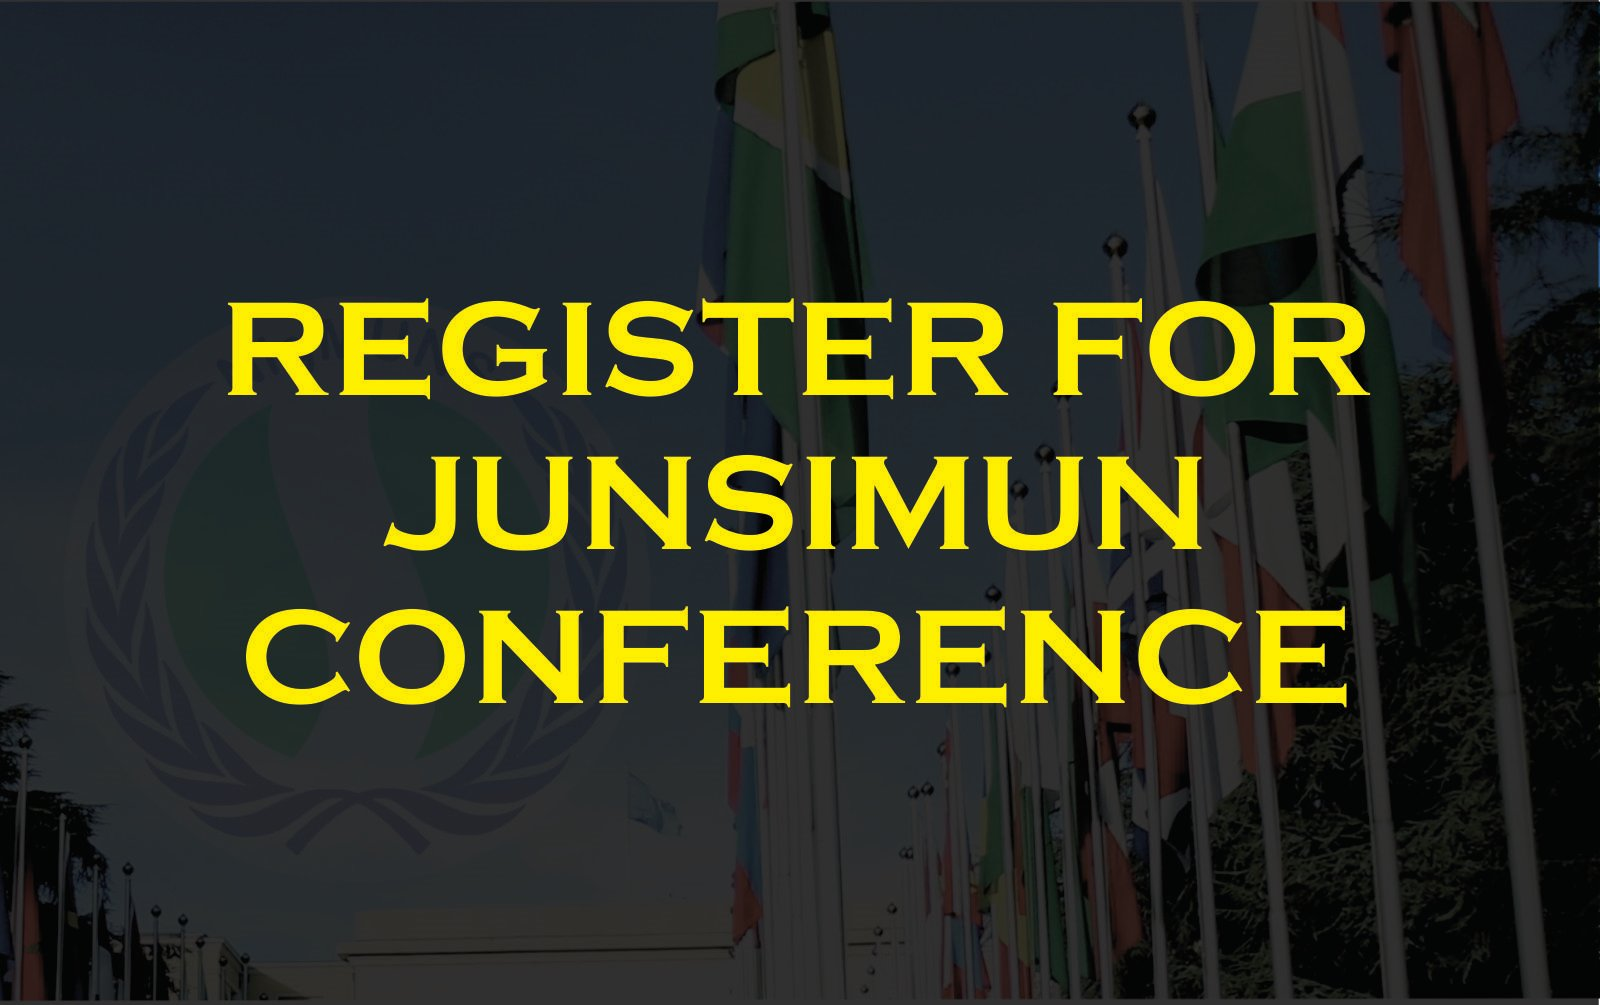 REGISTER FOR JUNSIMUN CONFERENCE